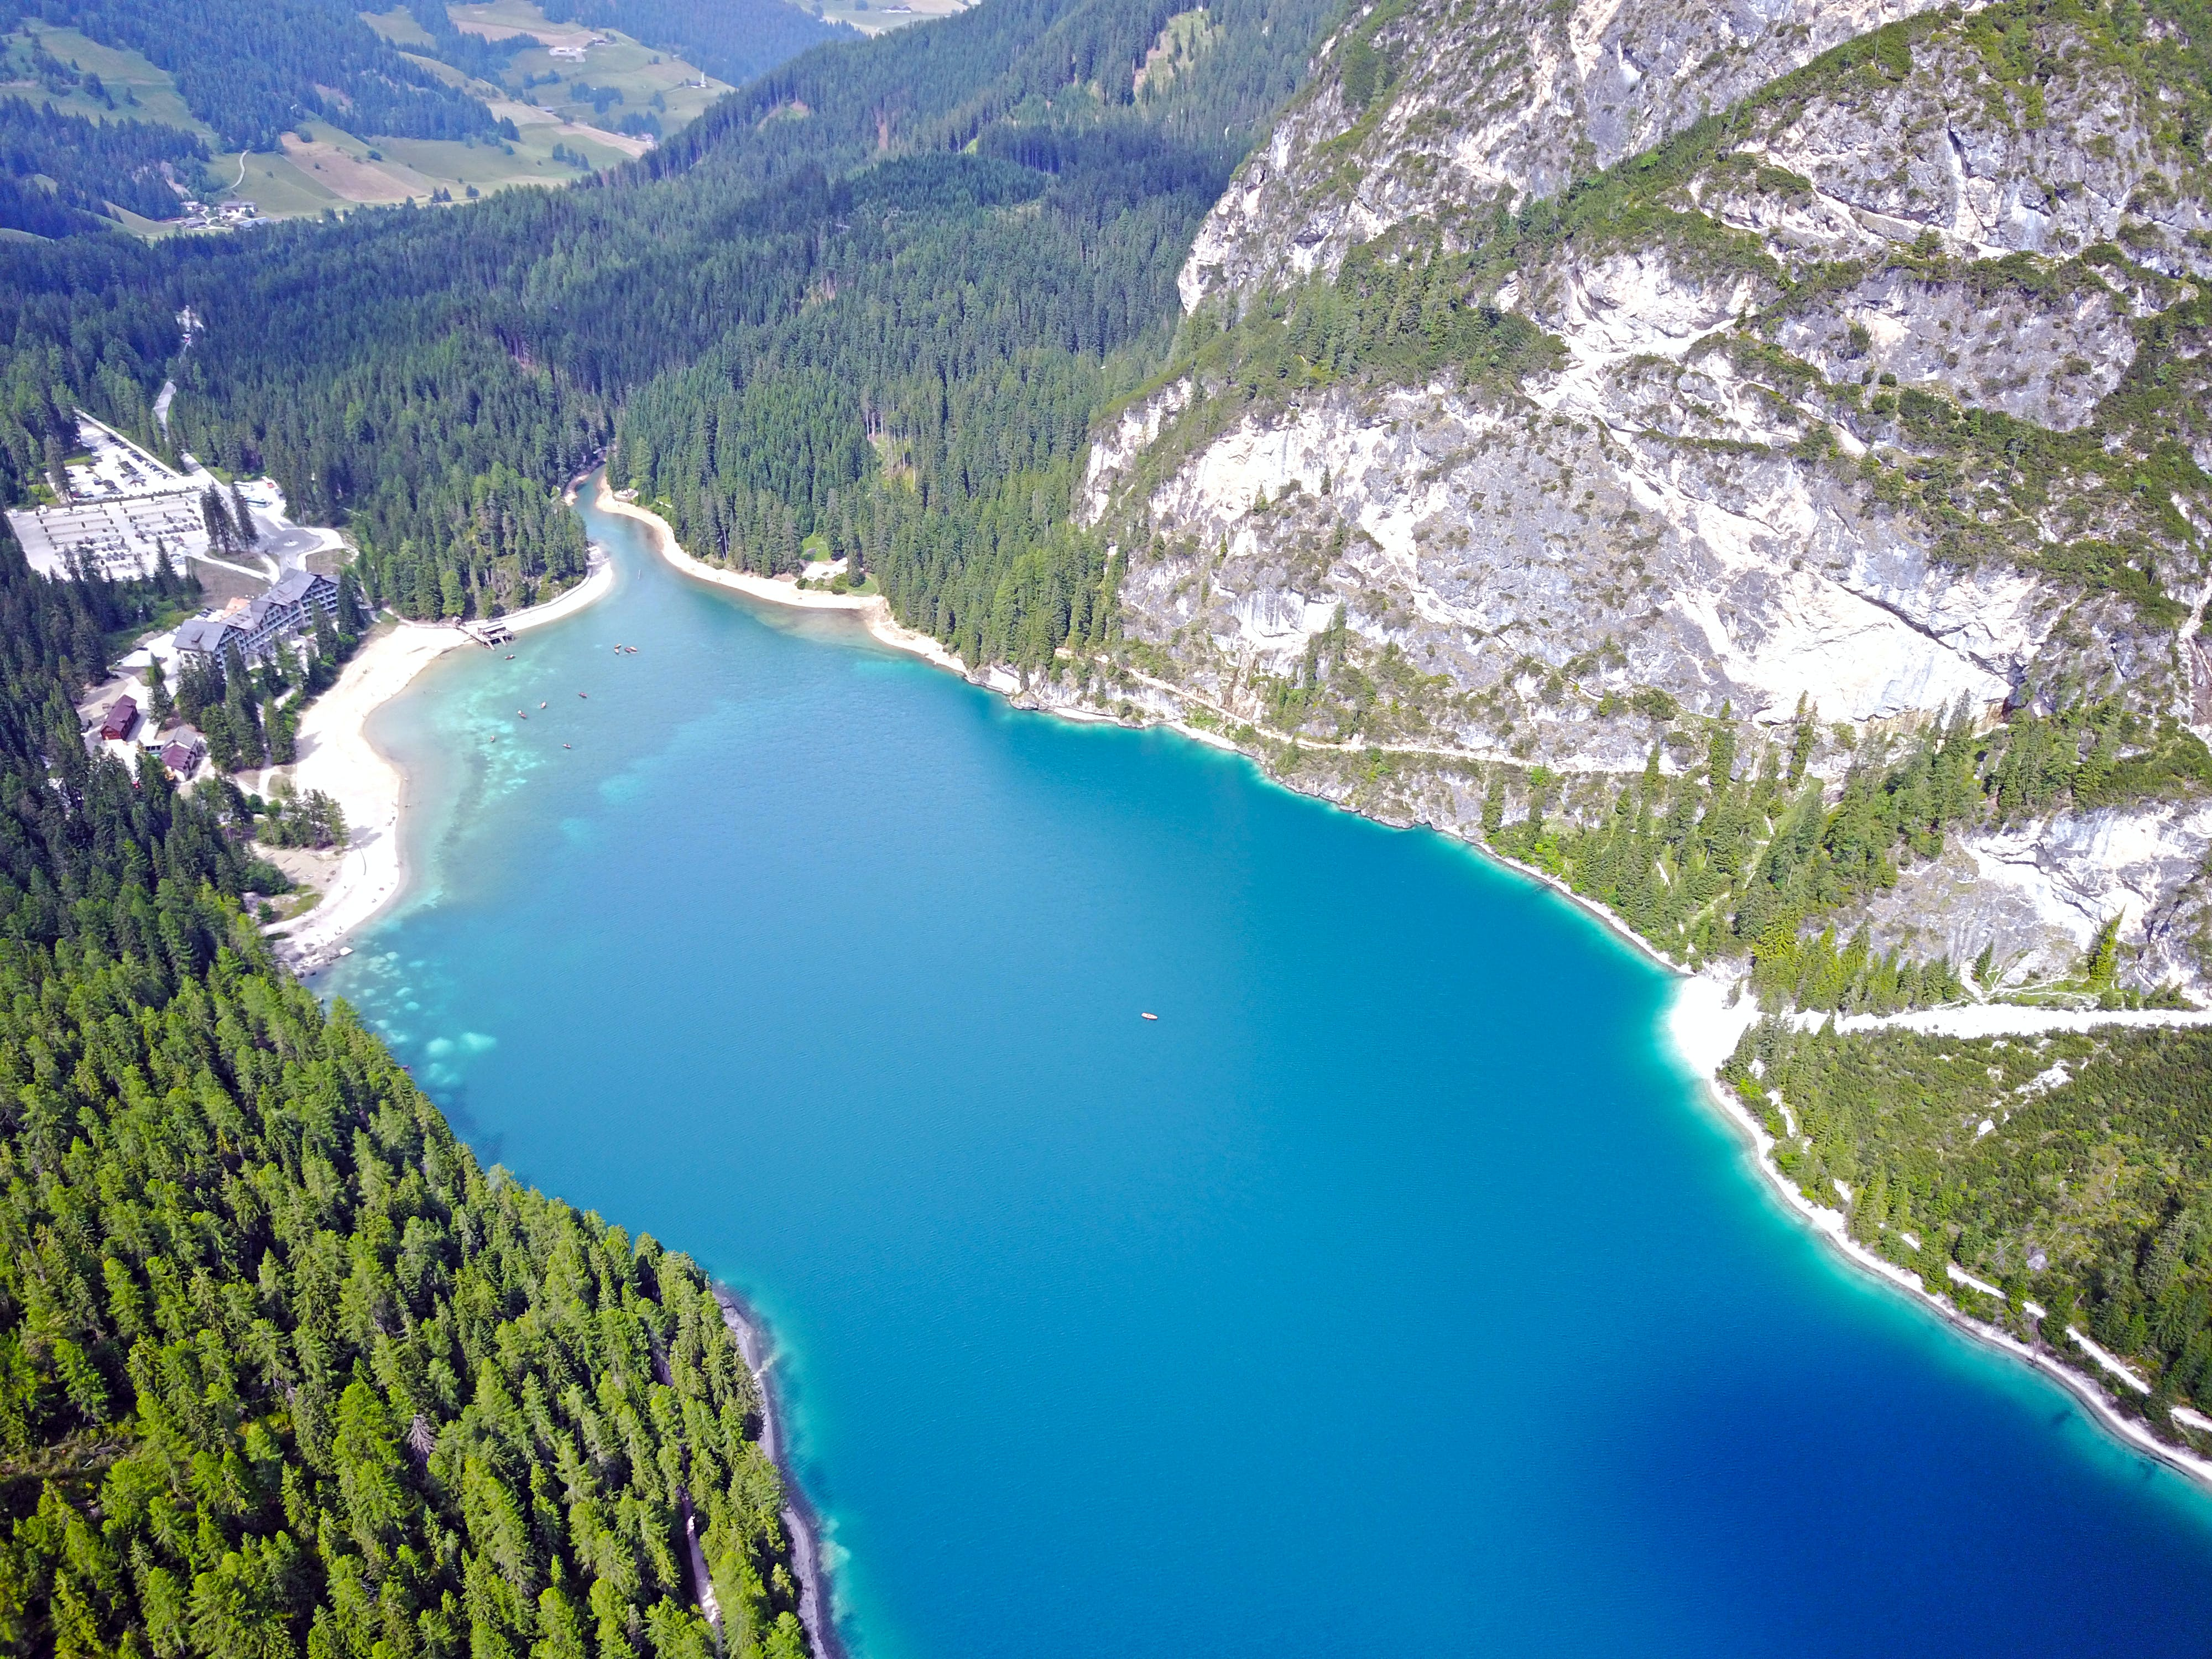 Aerial Photography of Mountains With River